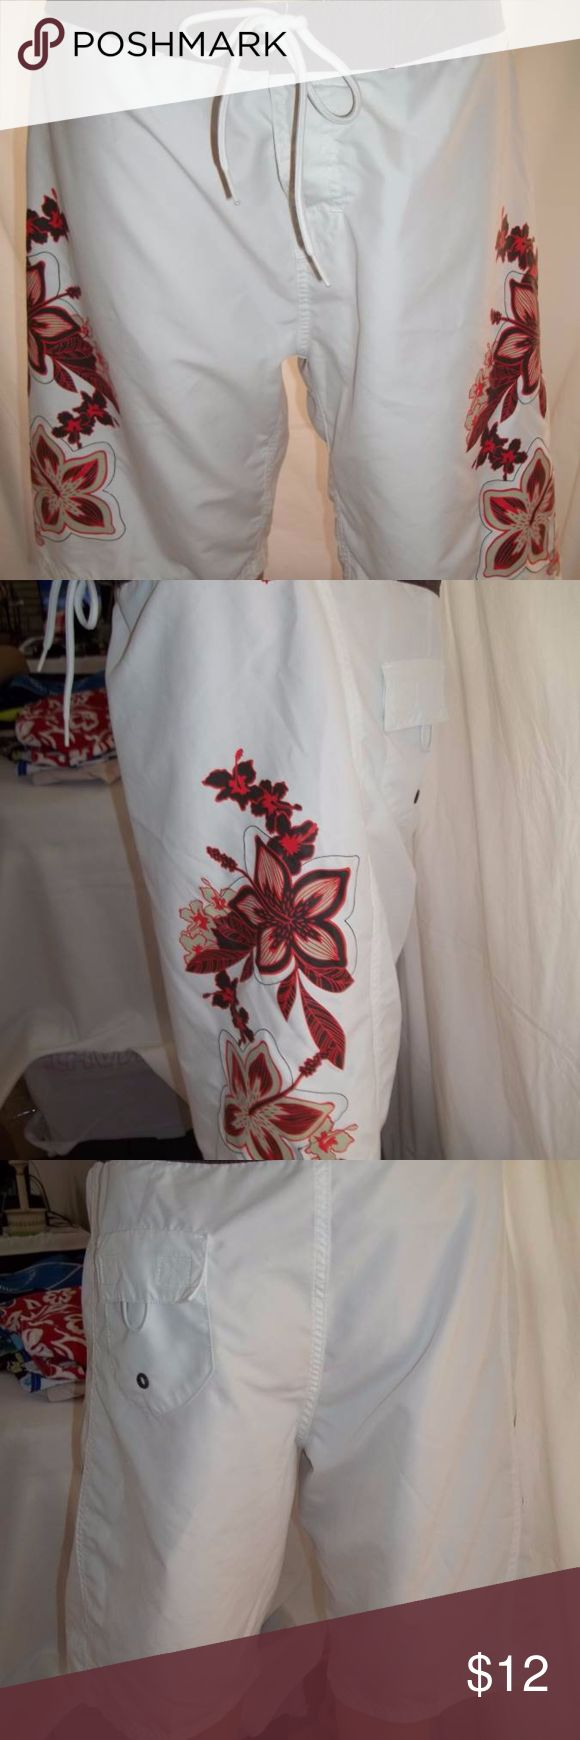 """O'Neill Board Shorts w/Floral Design-GirlsSize: 13 This is a O'Neill Junior Girls Board Shorts. Has a nice floral design on both sides and a velcro closure with ties. Excellent Pre-Owned-Size: 11, Colors: White with Brown/Orange/Green detailing, Measurements: Waist: 34"""" and Inseam: 10"""". One to wear casually to a fun event or when you go to the pool, beach and lake. Thank you for coming to Karens Collectibles closet here on Poshmark. O'Neill Shorts"""